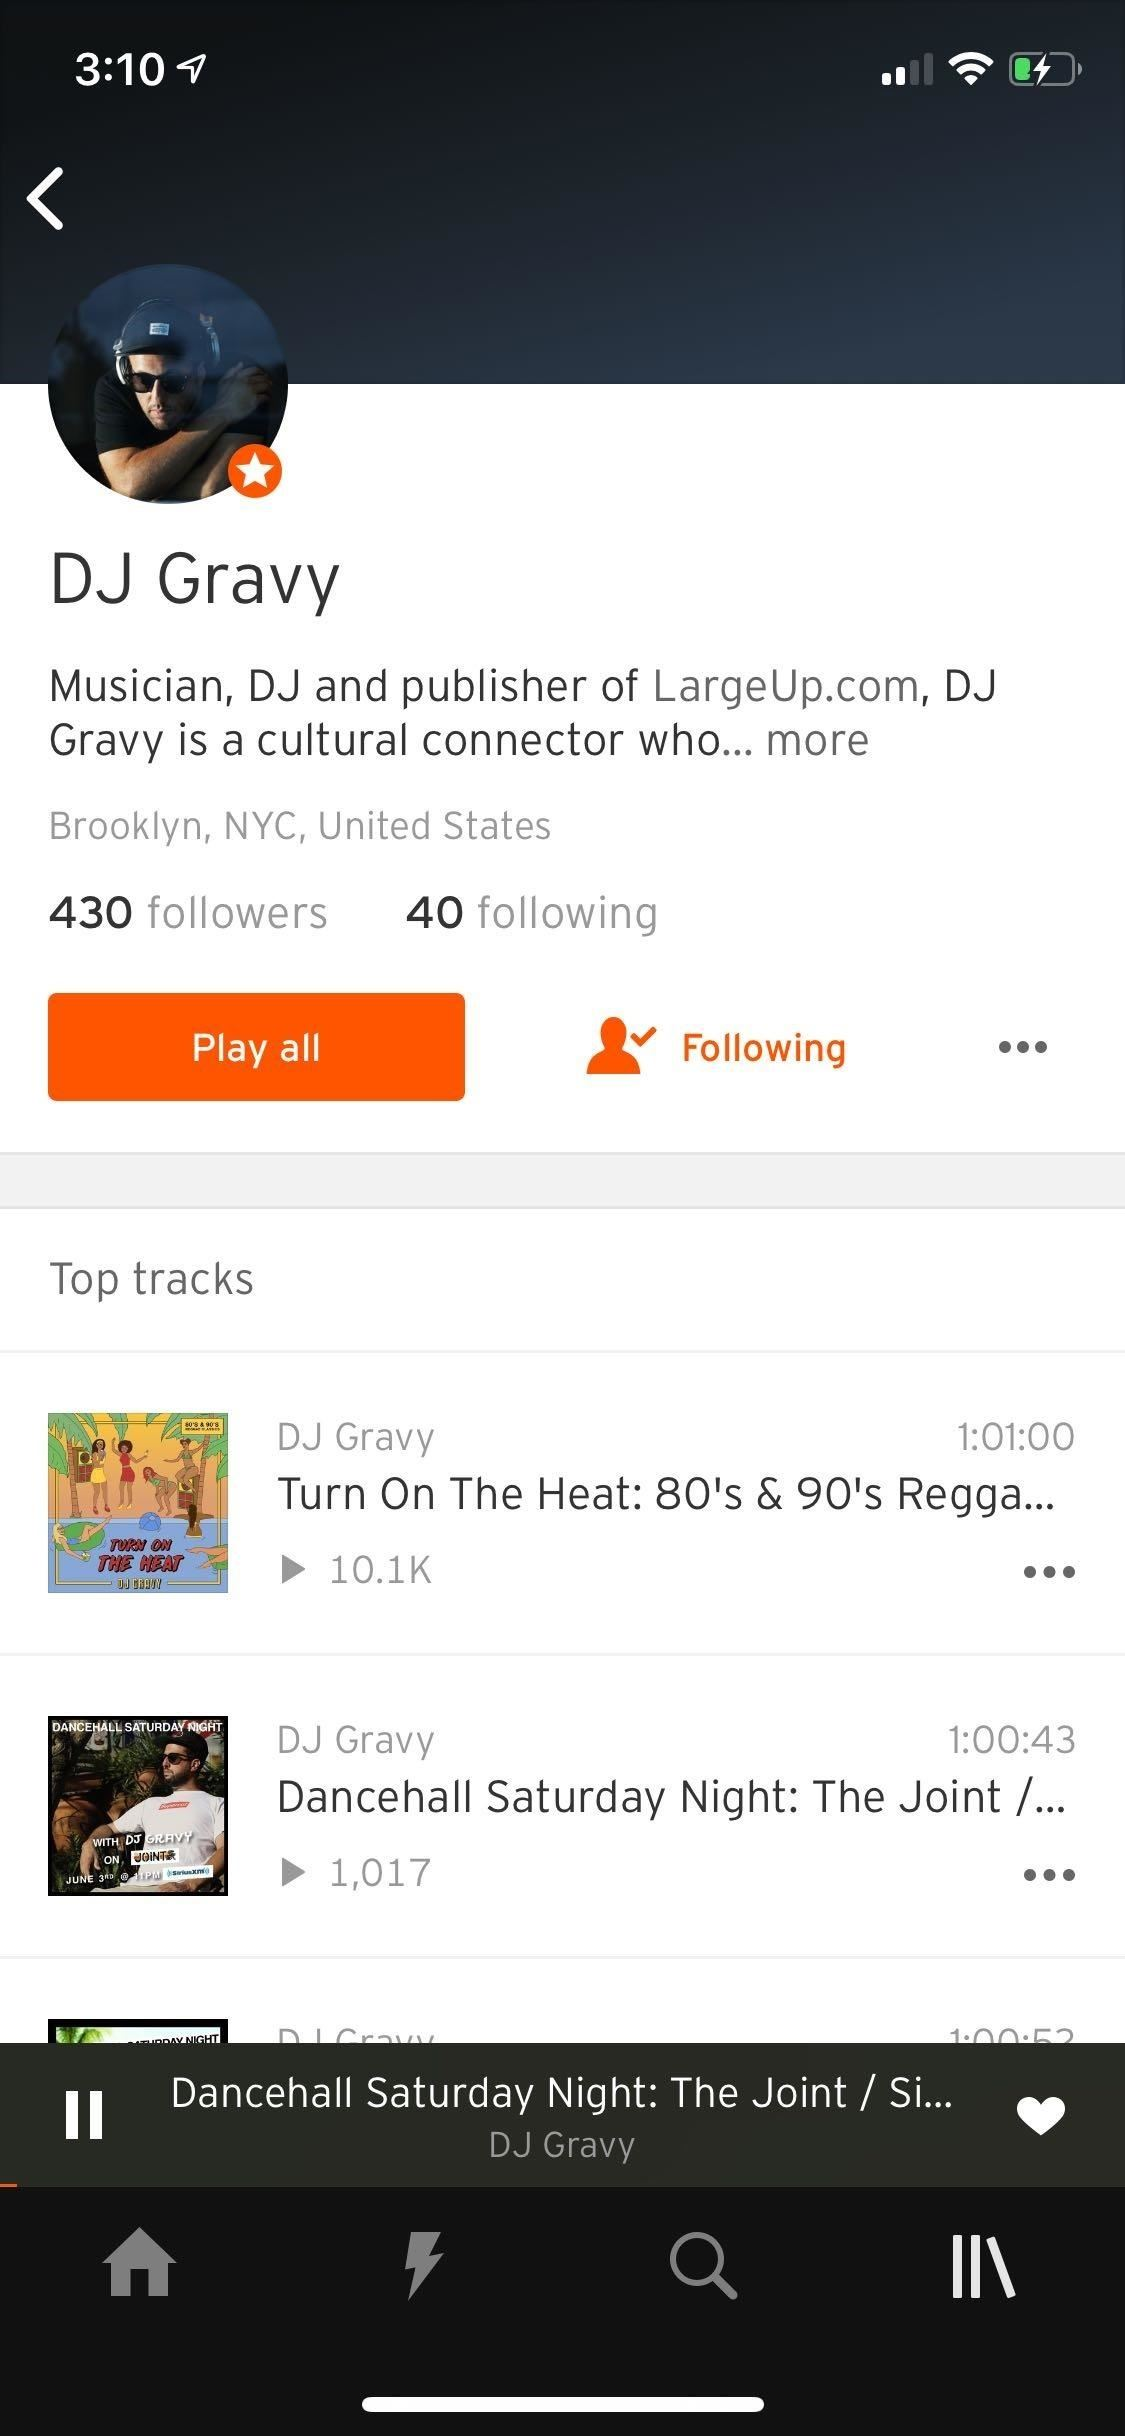 Create a station in SoundCloud to discover new artists and songs.